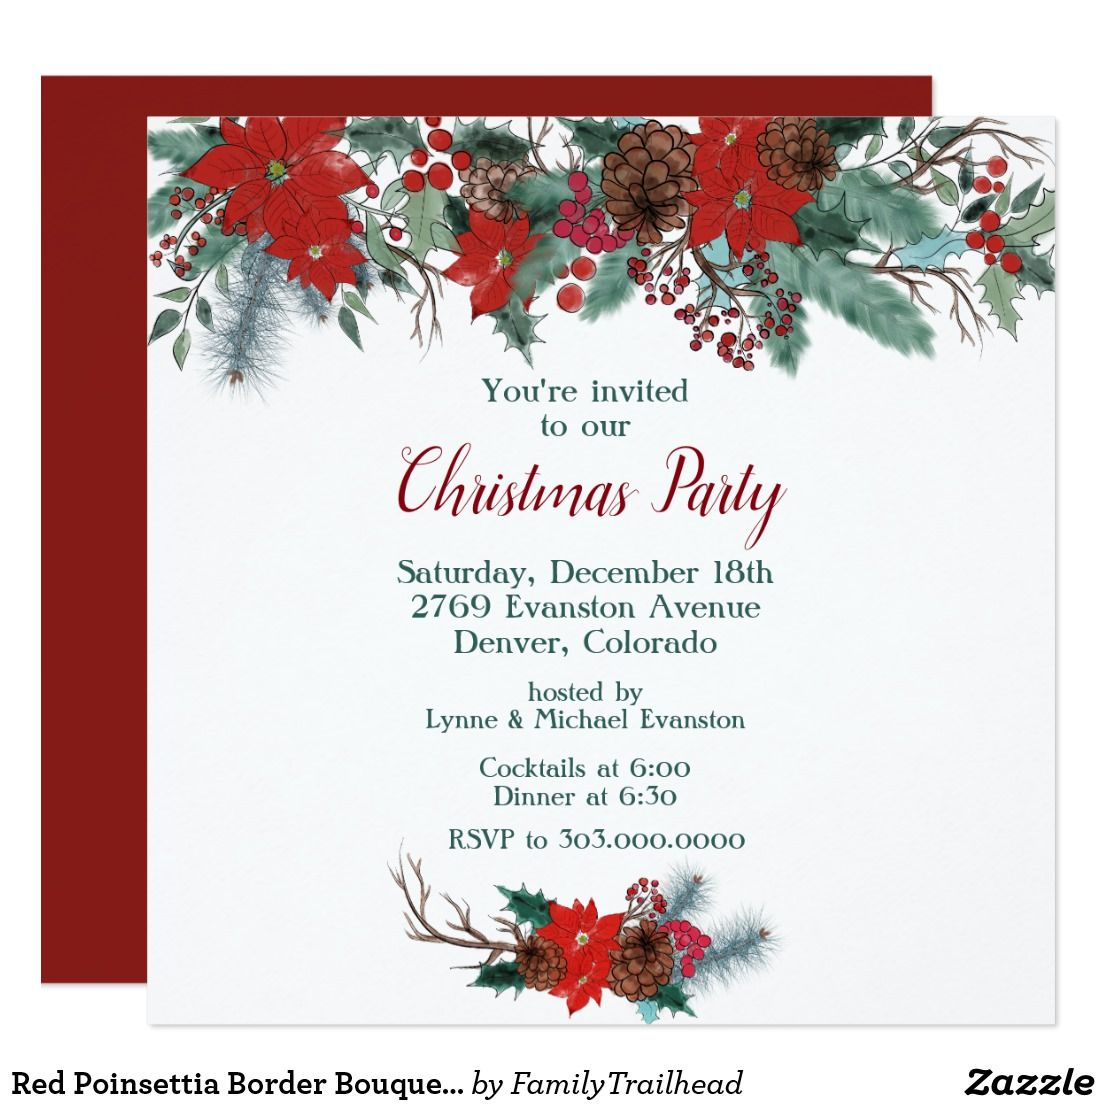 Red Poinsettia Border Bouquet Christmas Party Invitation Zazzle